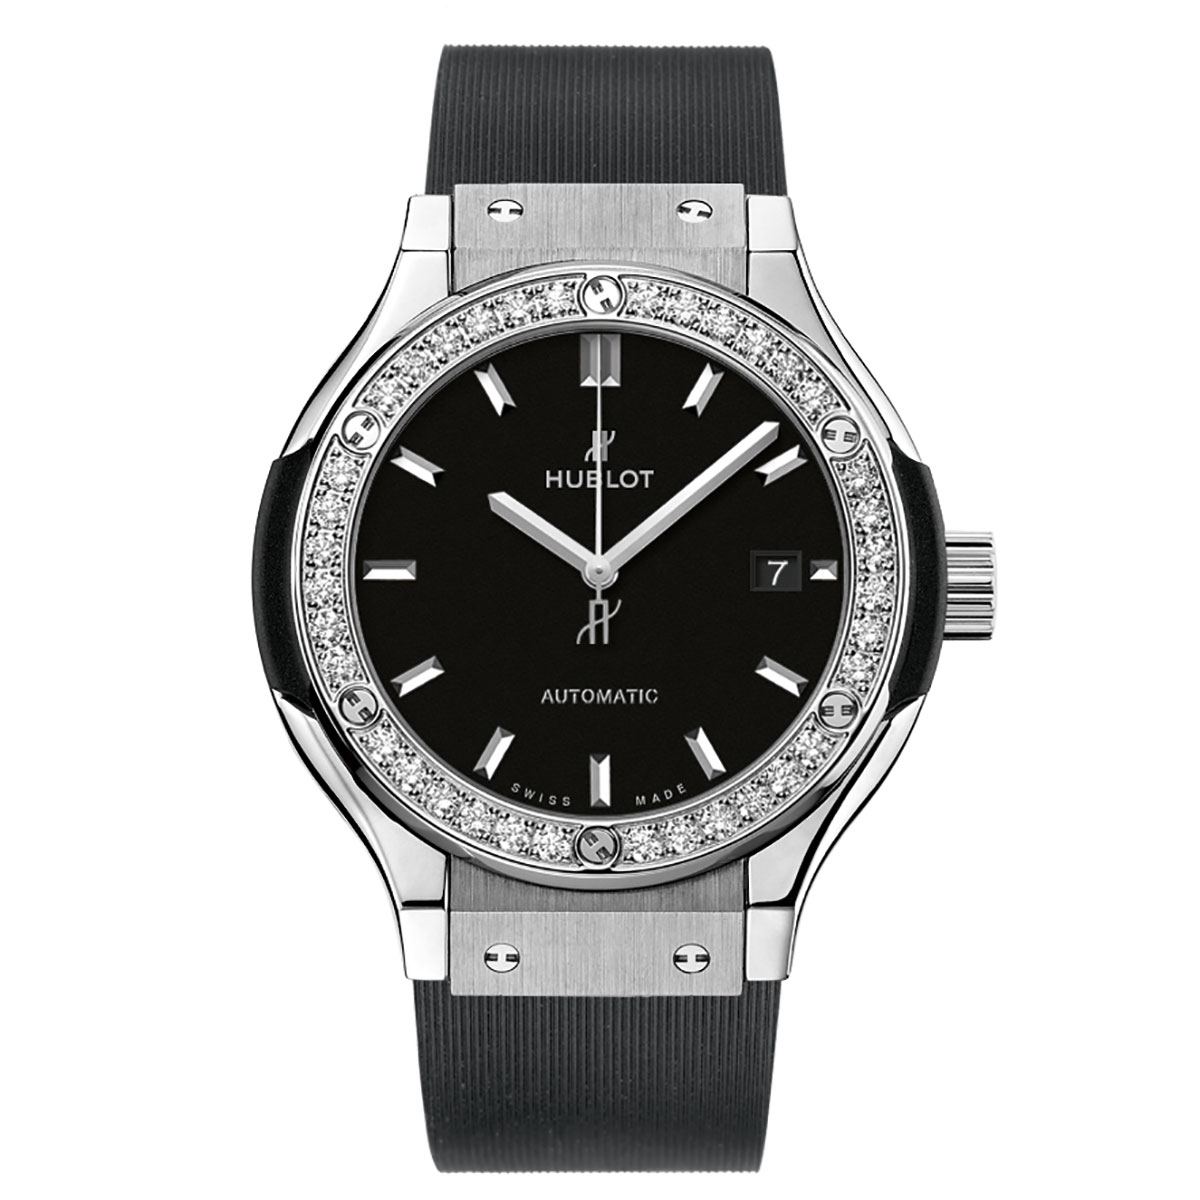 Hublot Classic Fusion Titanium Diamond Watch 33 mm